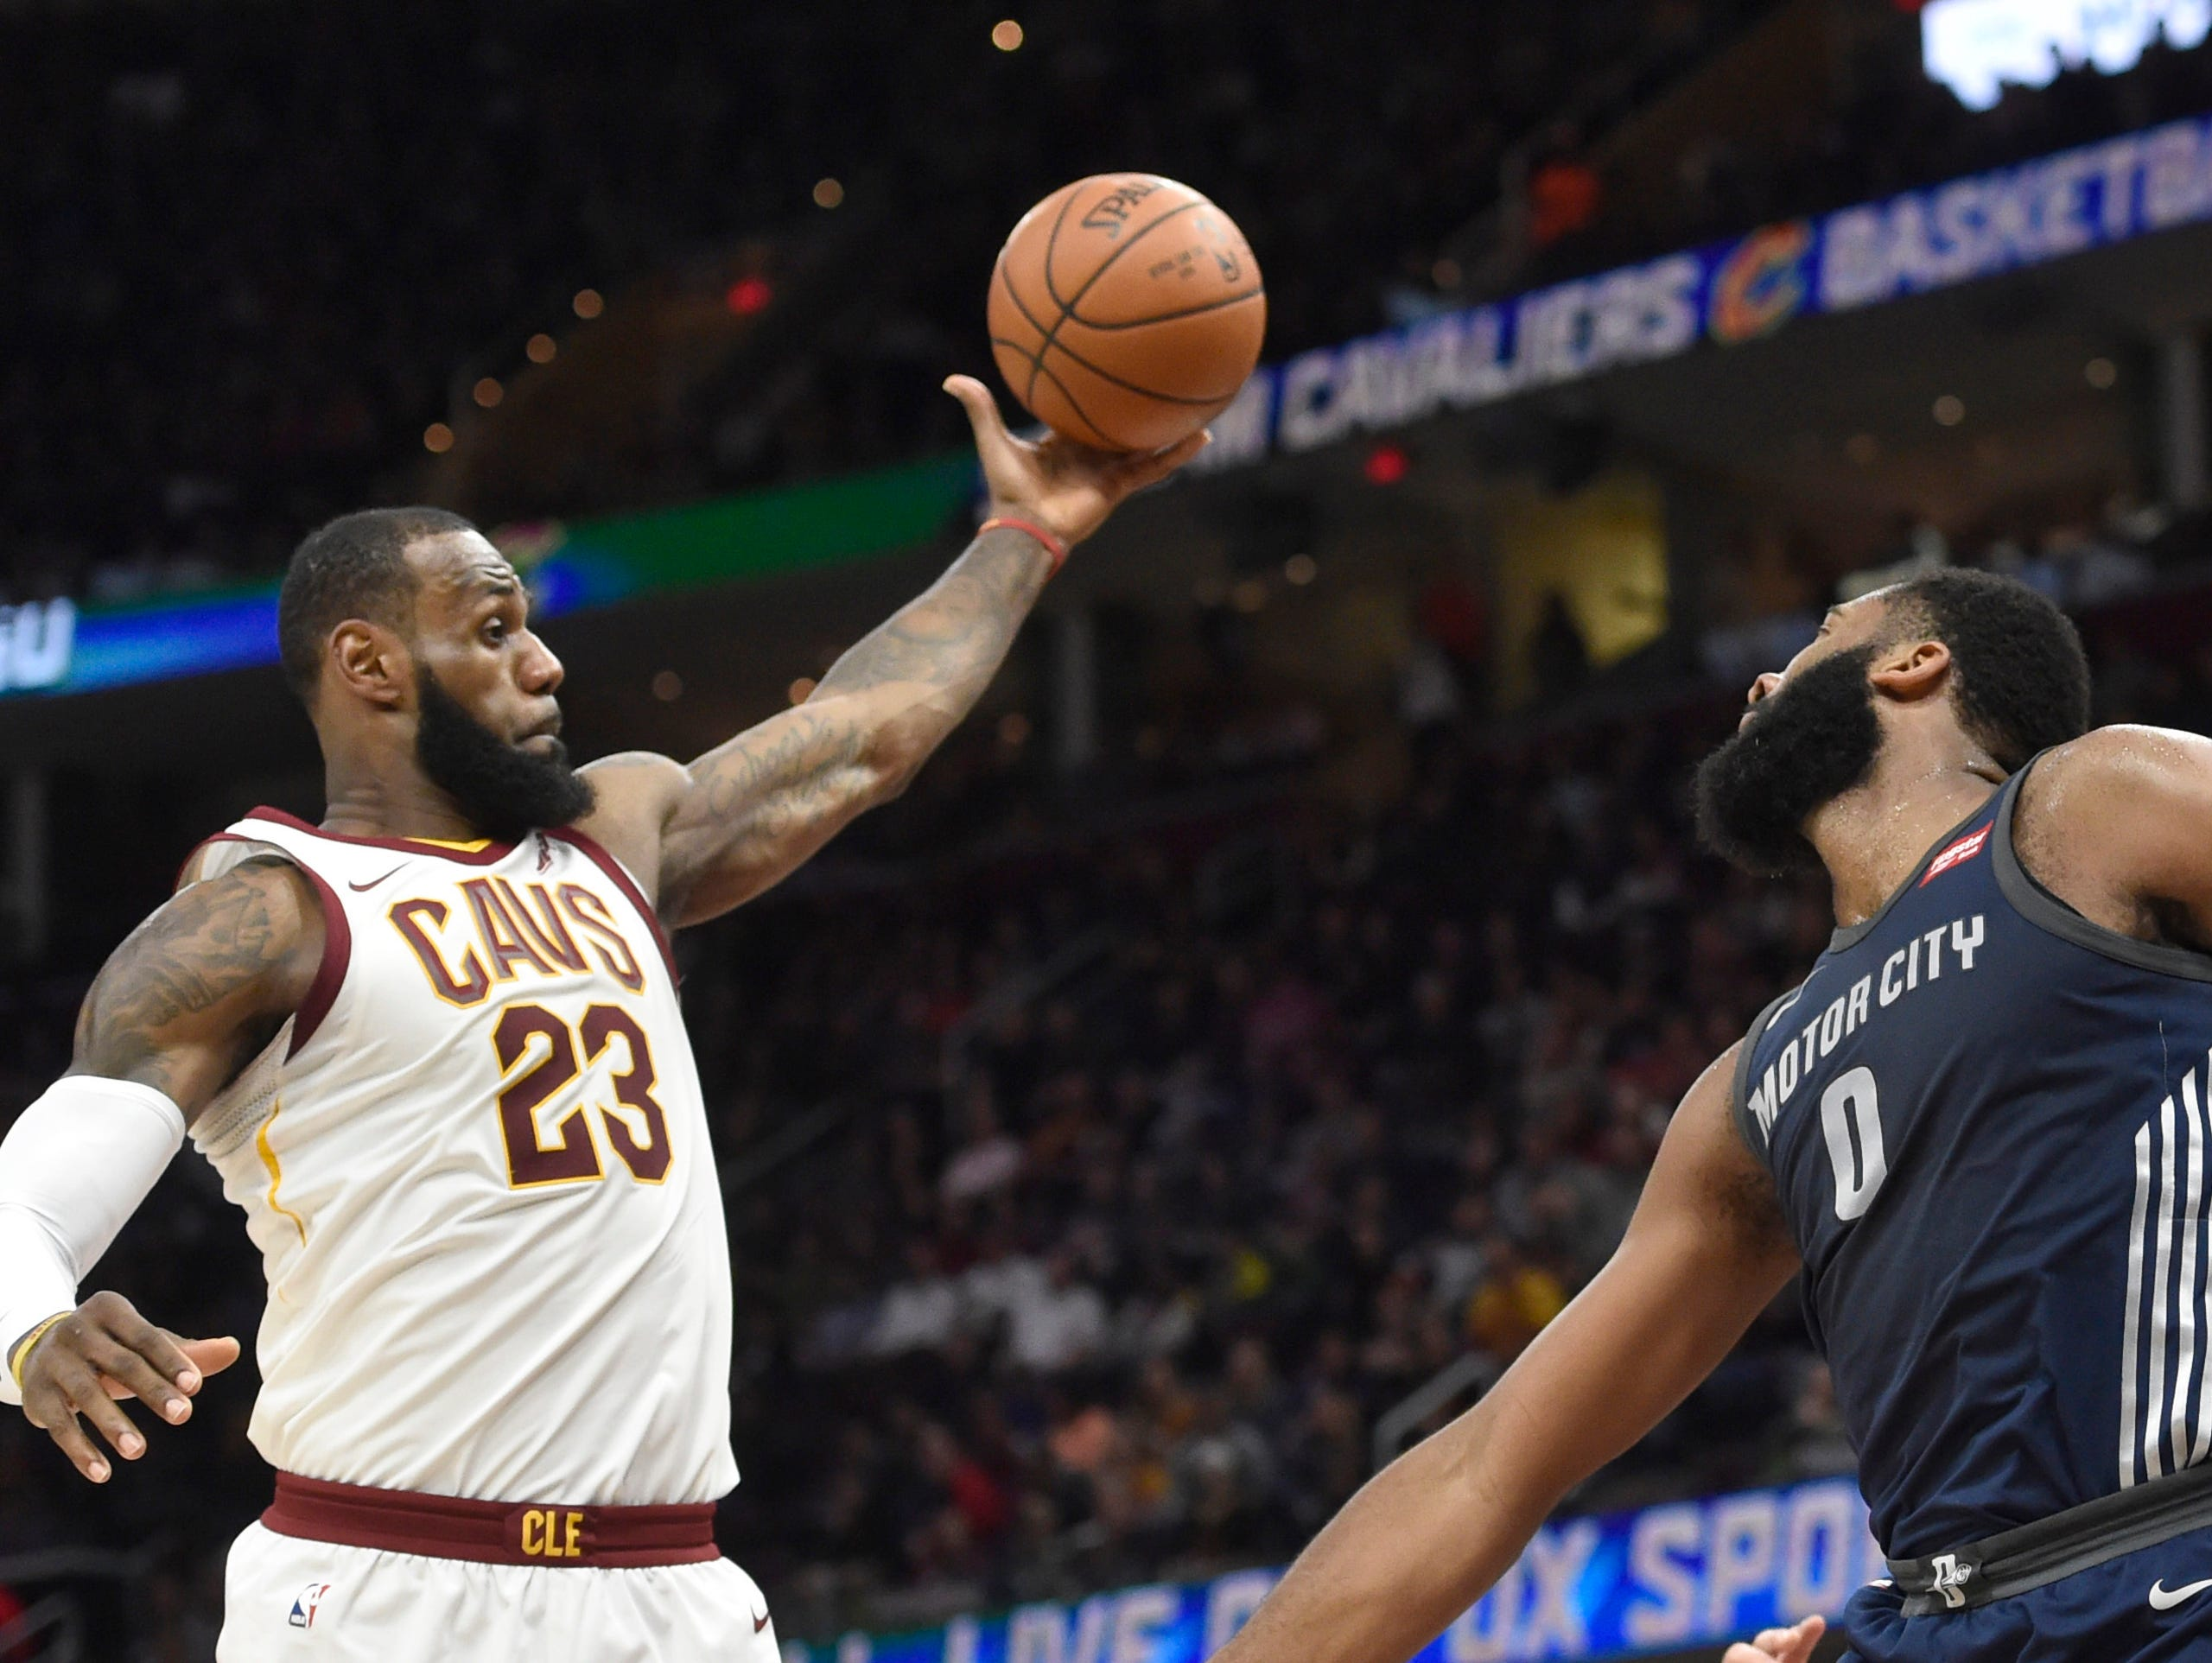 Cleveland Cavaliers forward LeBron James (23) rebounds